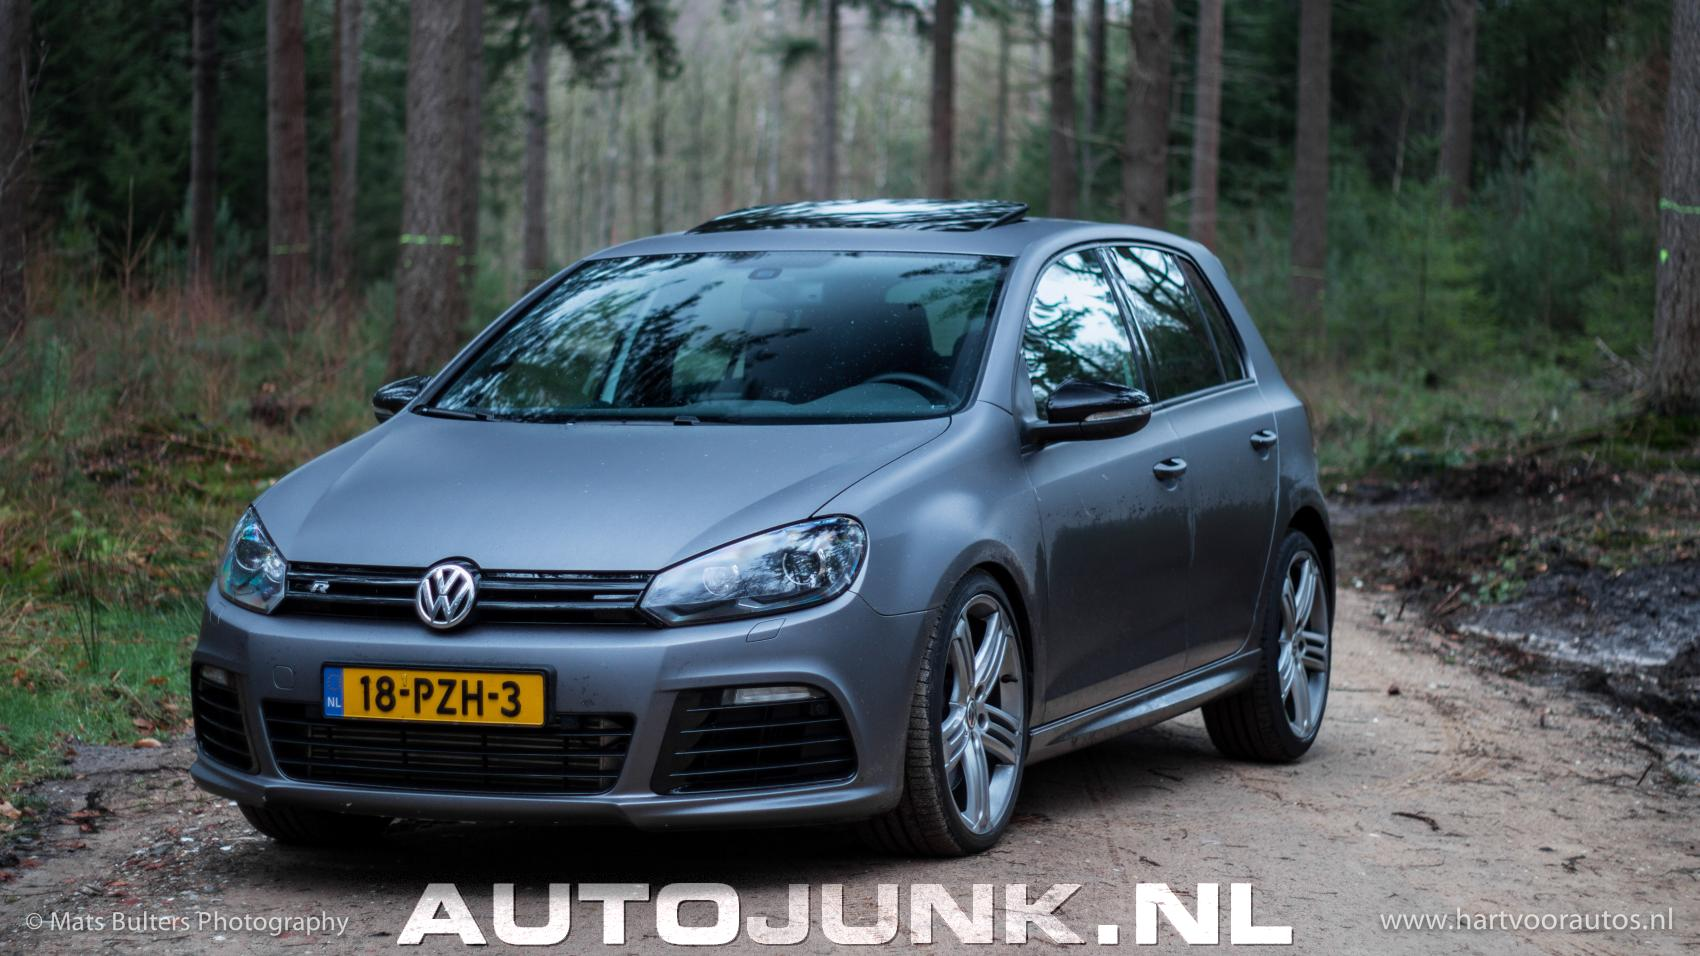 volkswagen golf r20 400pk vs golf r32 foto 39 s autojunk. Black Bedroom Furniture Sets. Home Design Ideas